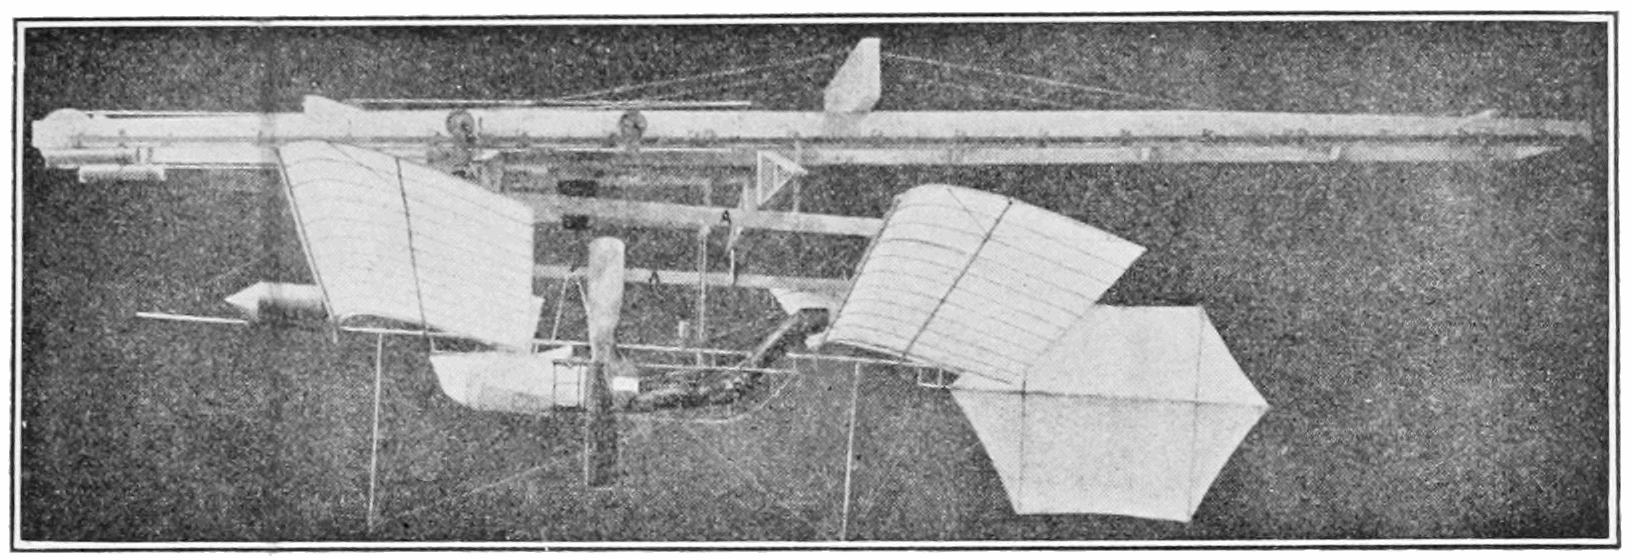 PSM V79 D415 Aerodrome 5 on the launching ways.png